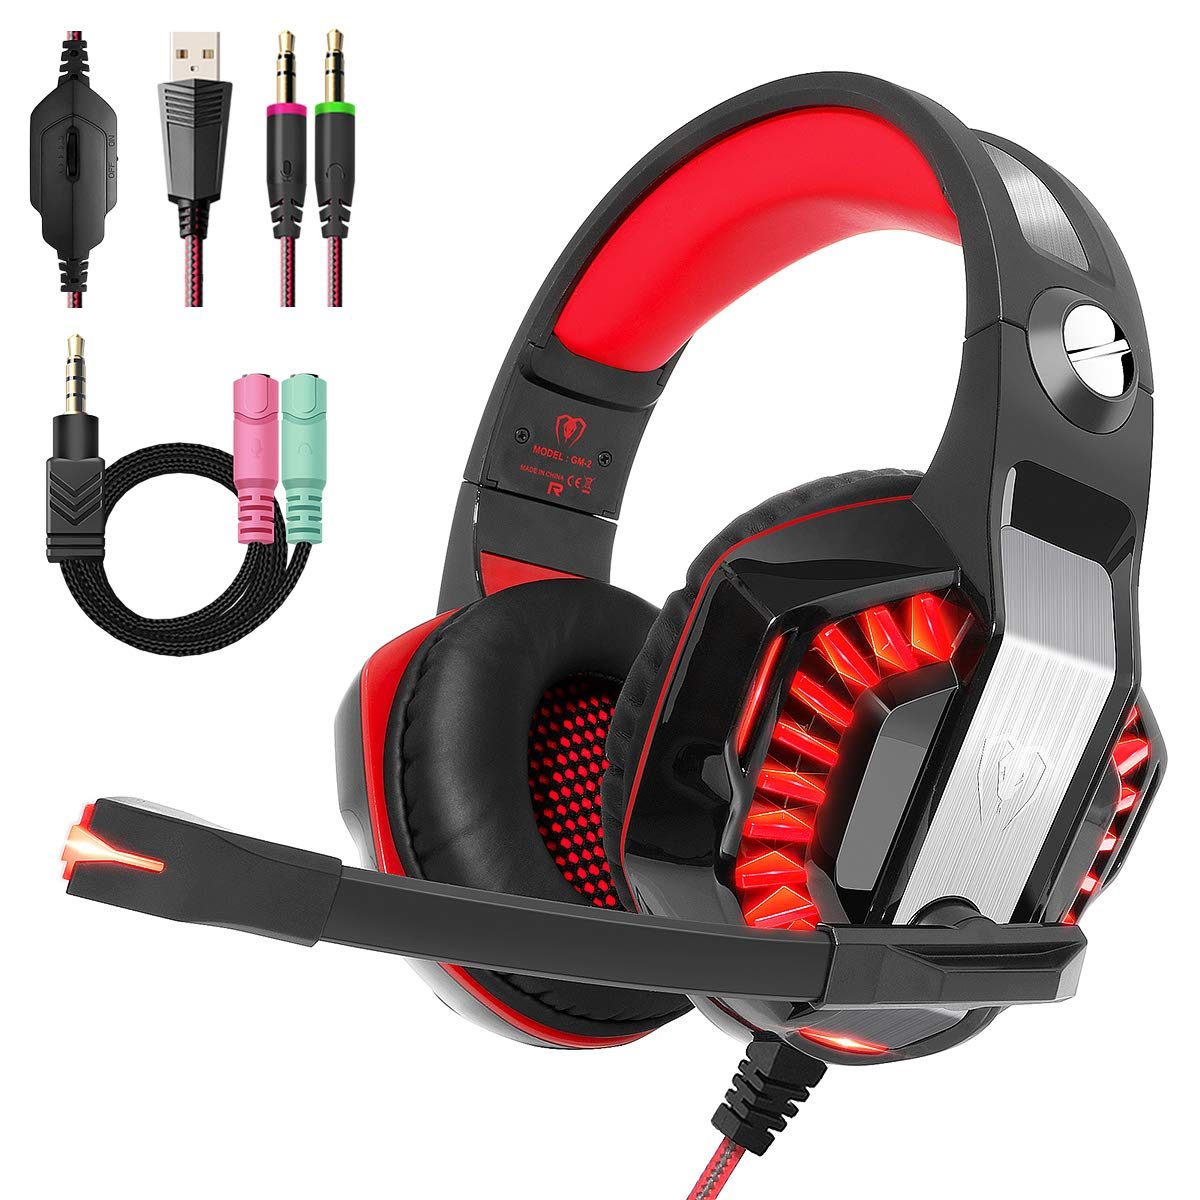 Beexcellent Gaming Headset for PS4 PC Xbox One, Over Ear Gaming Headphones with Stereo Surround Sound, LED Light, Noise Cancelling Mic for Mac Laptop by Beexcellent